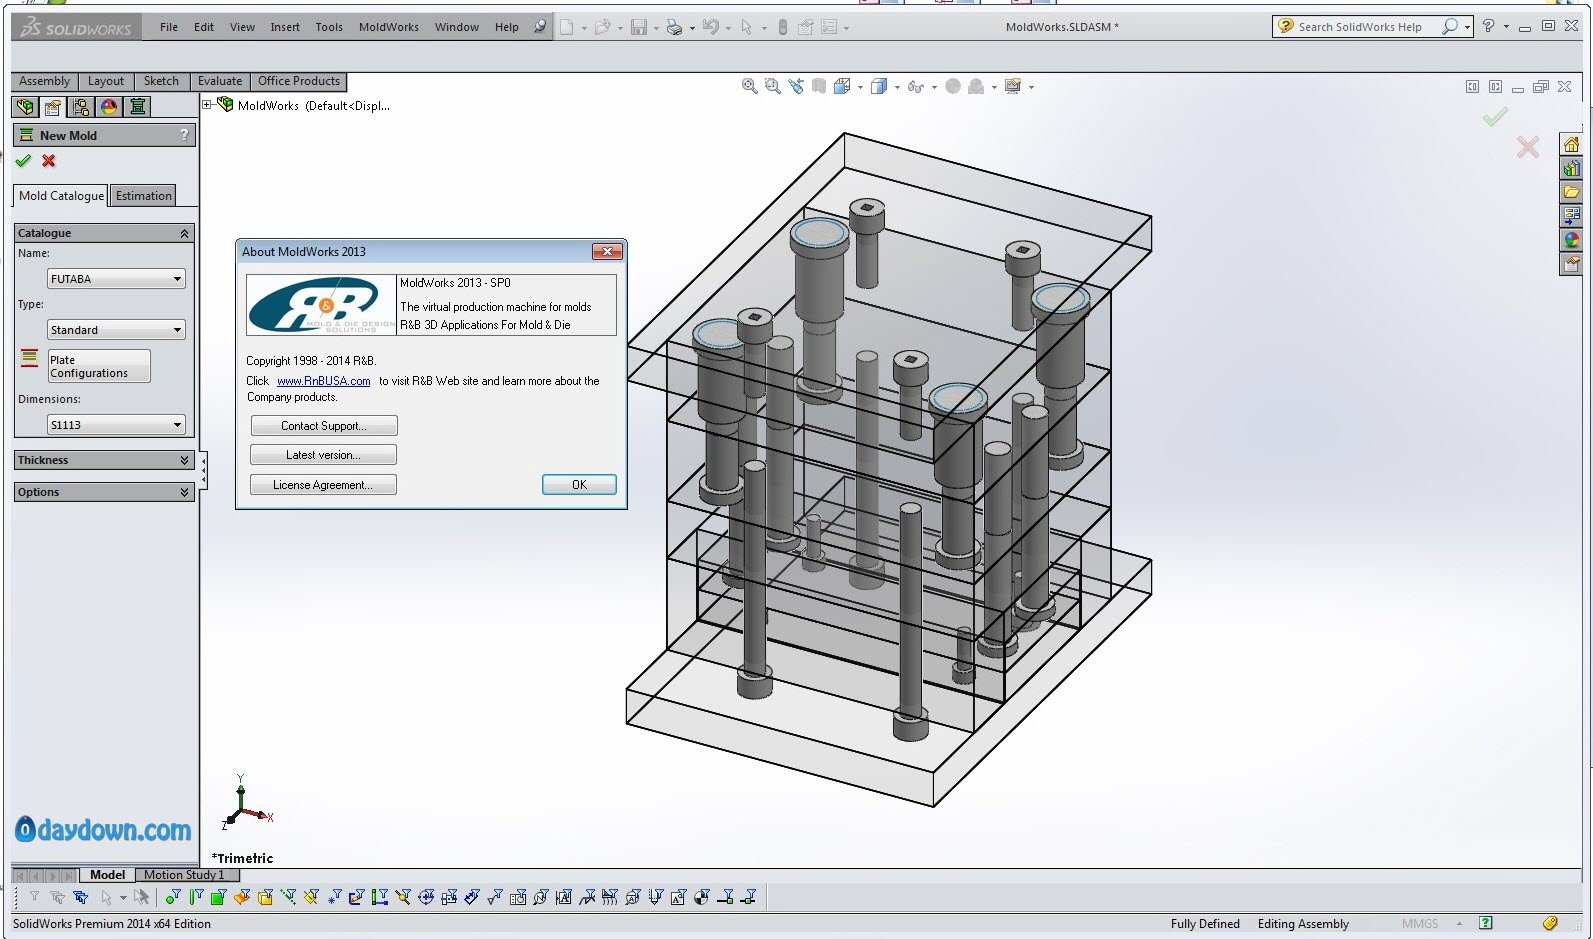 Download solidworks 2013 x64